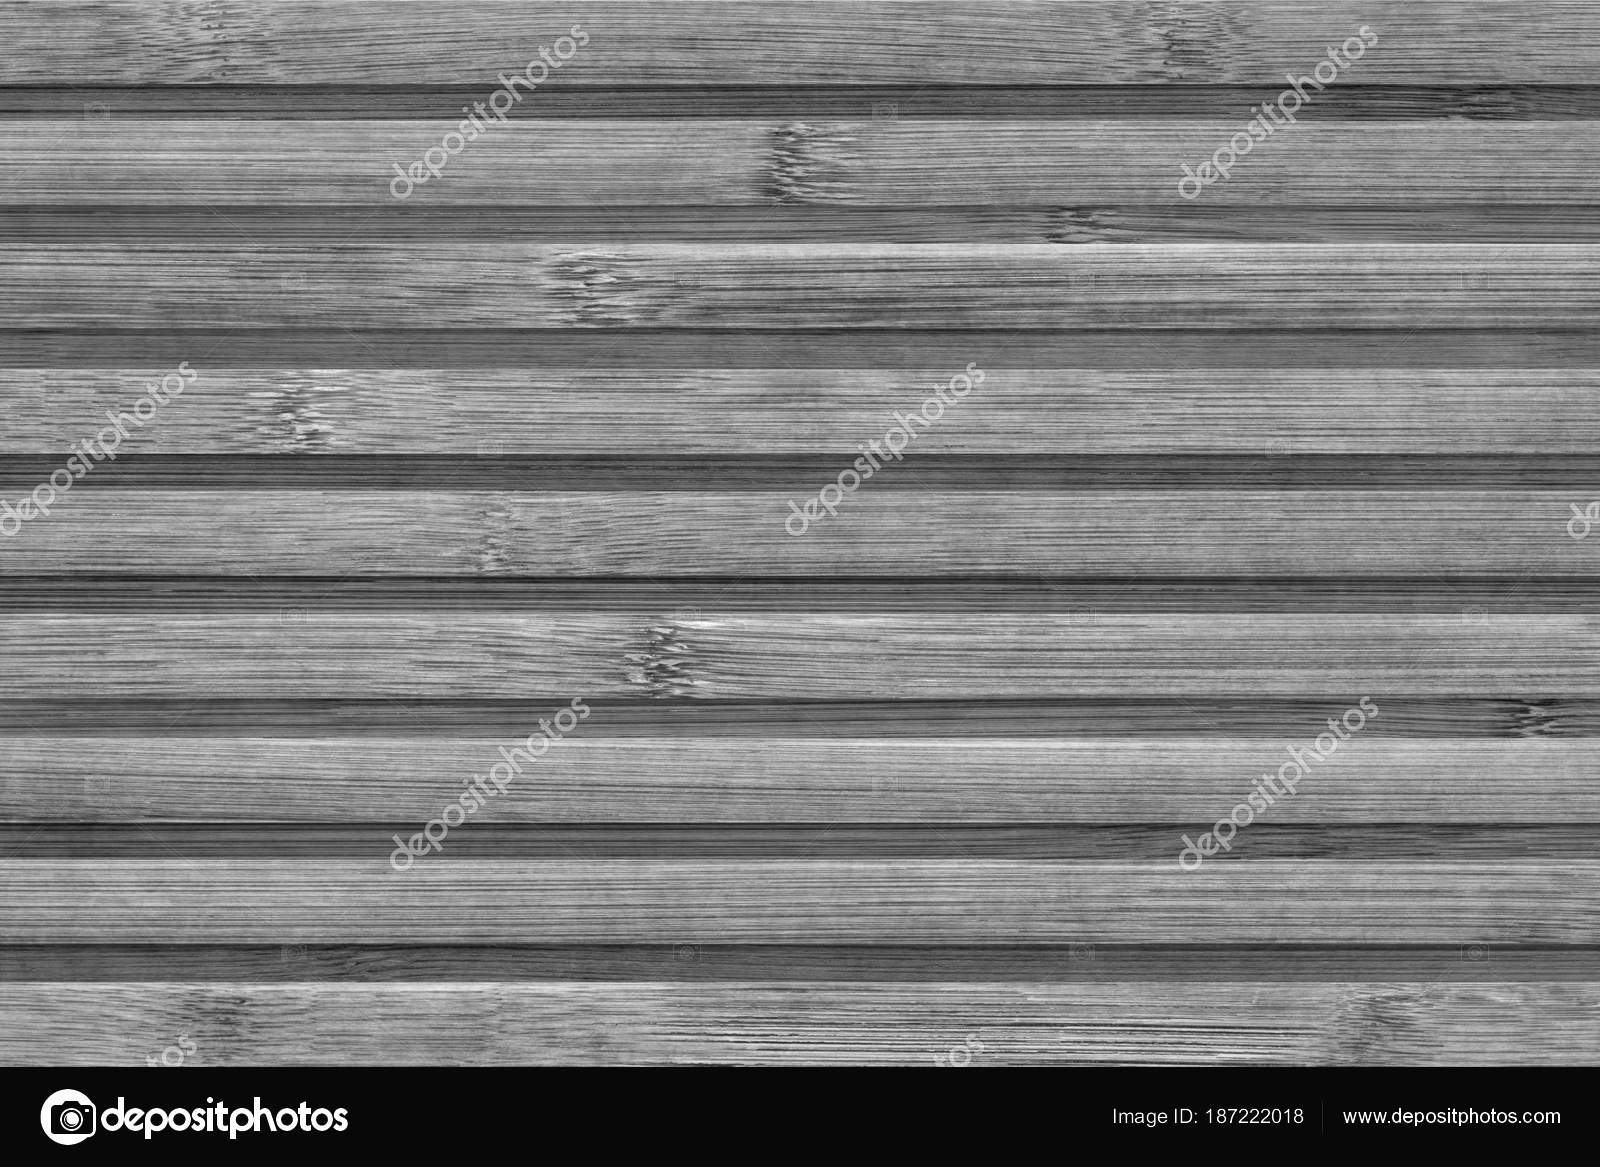 High Resolution Bleached Gray Slatted Bamboo Mat Rustic Coarse Grain Grunge Texture Stock Photo